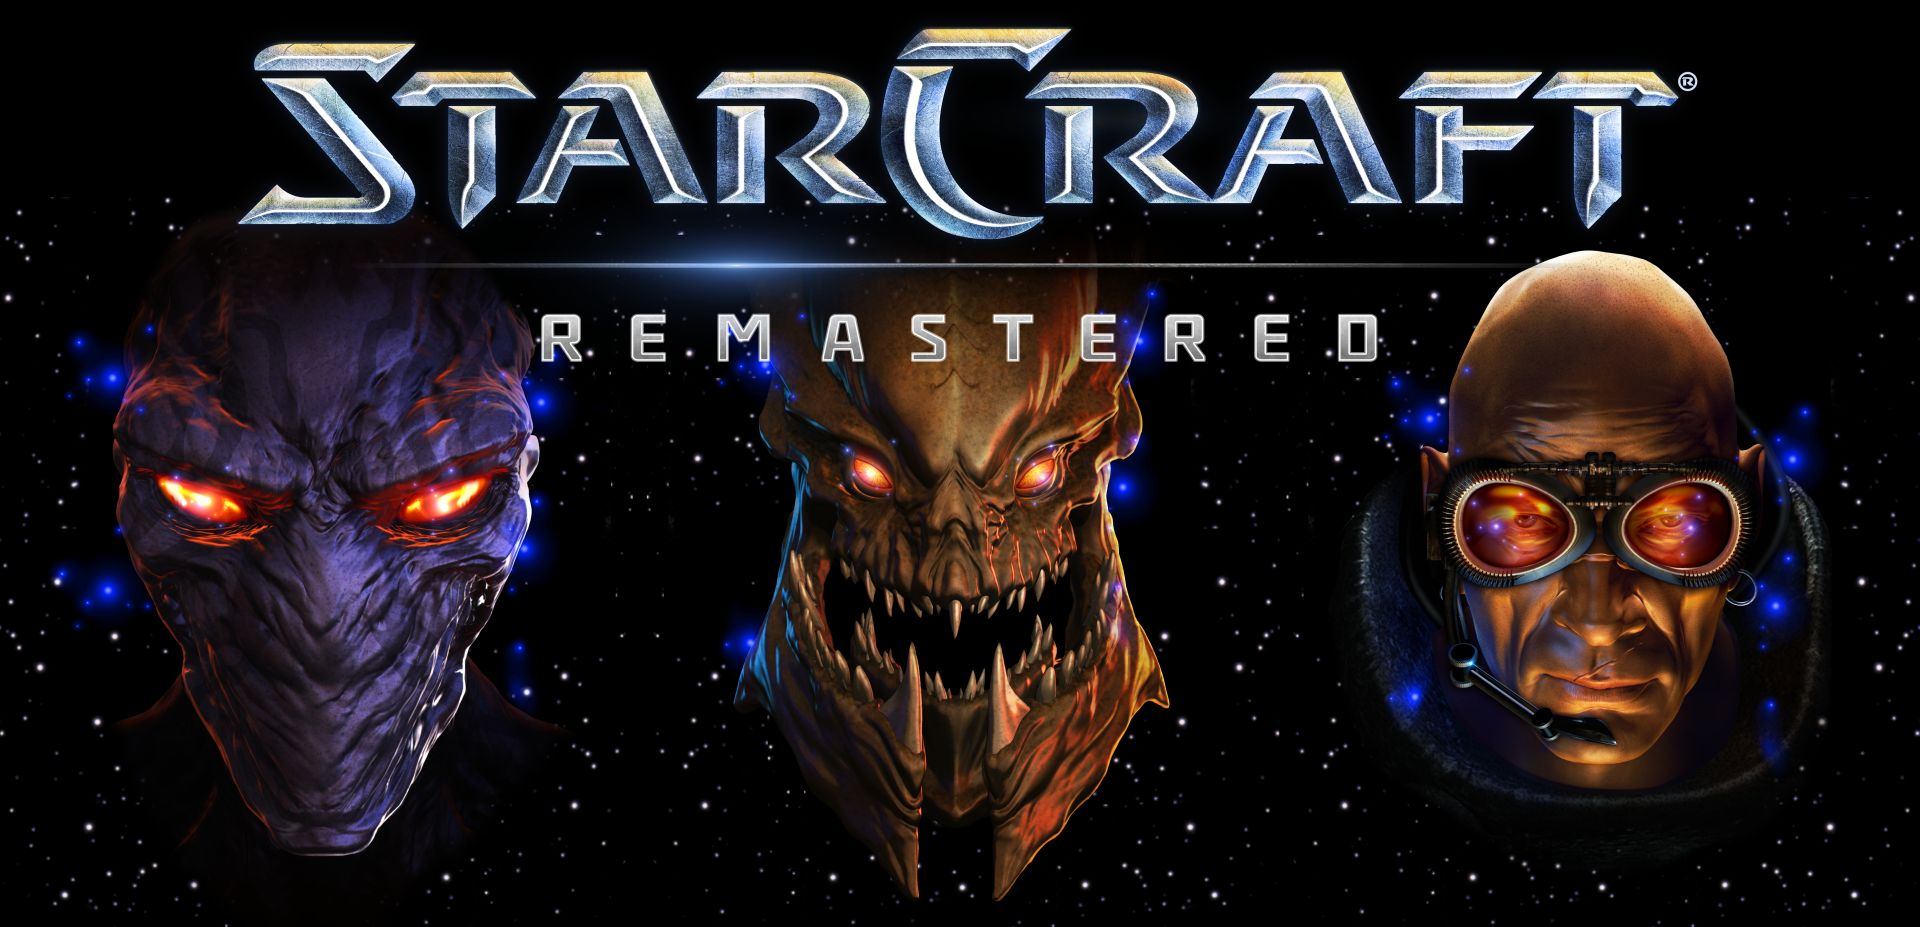 StarCraft and its Brood War expansion are now officially free, while a new remastered version is now on sale